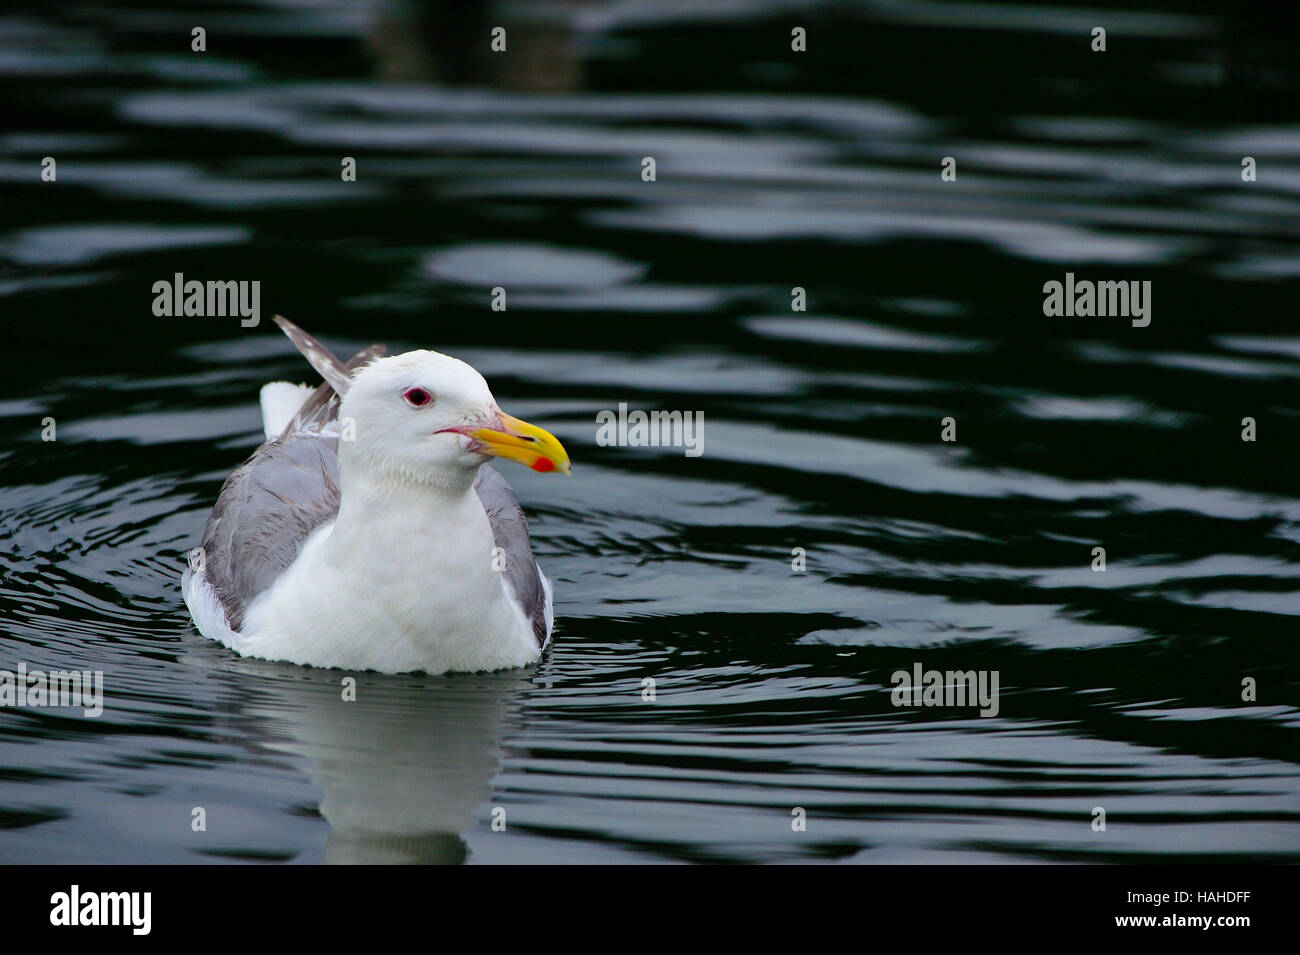 A glaucous-winged gull (Larus glaucescens), resting on calm dark water - Stock Image